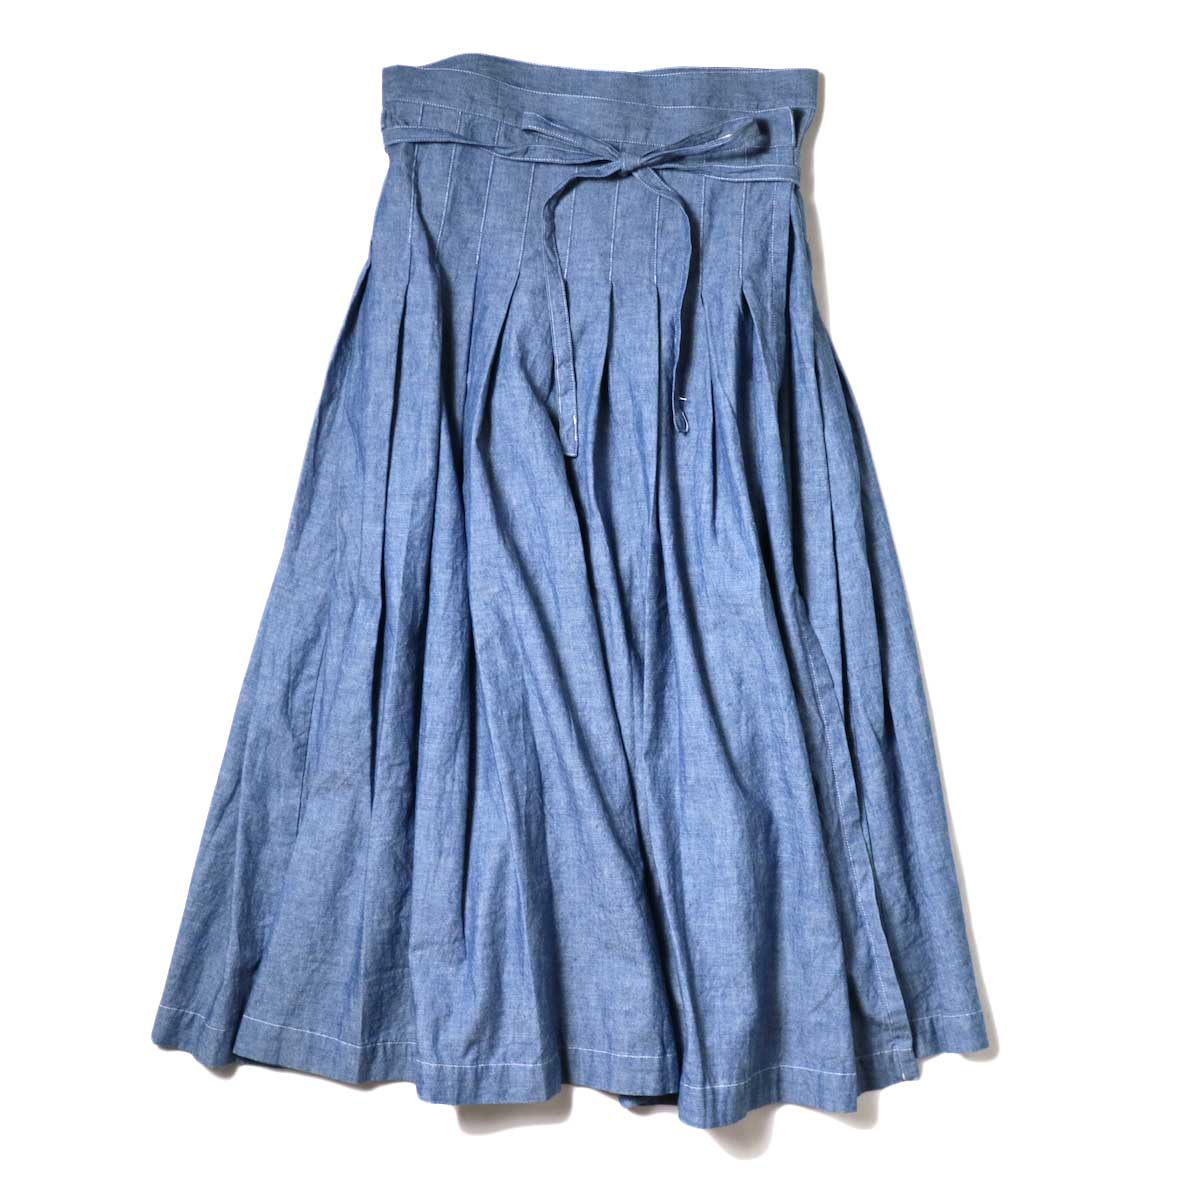 ARMEN / Pleated Wrap Skirt (Blue Chambray) 正面